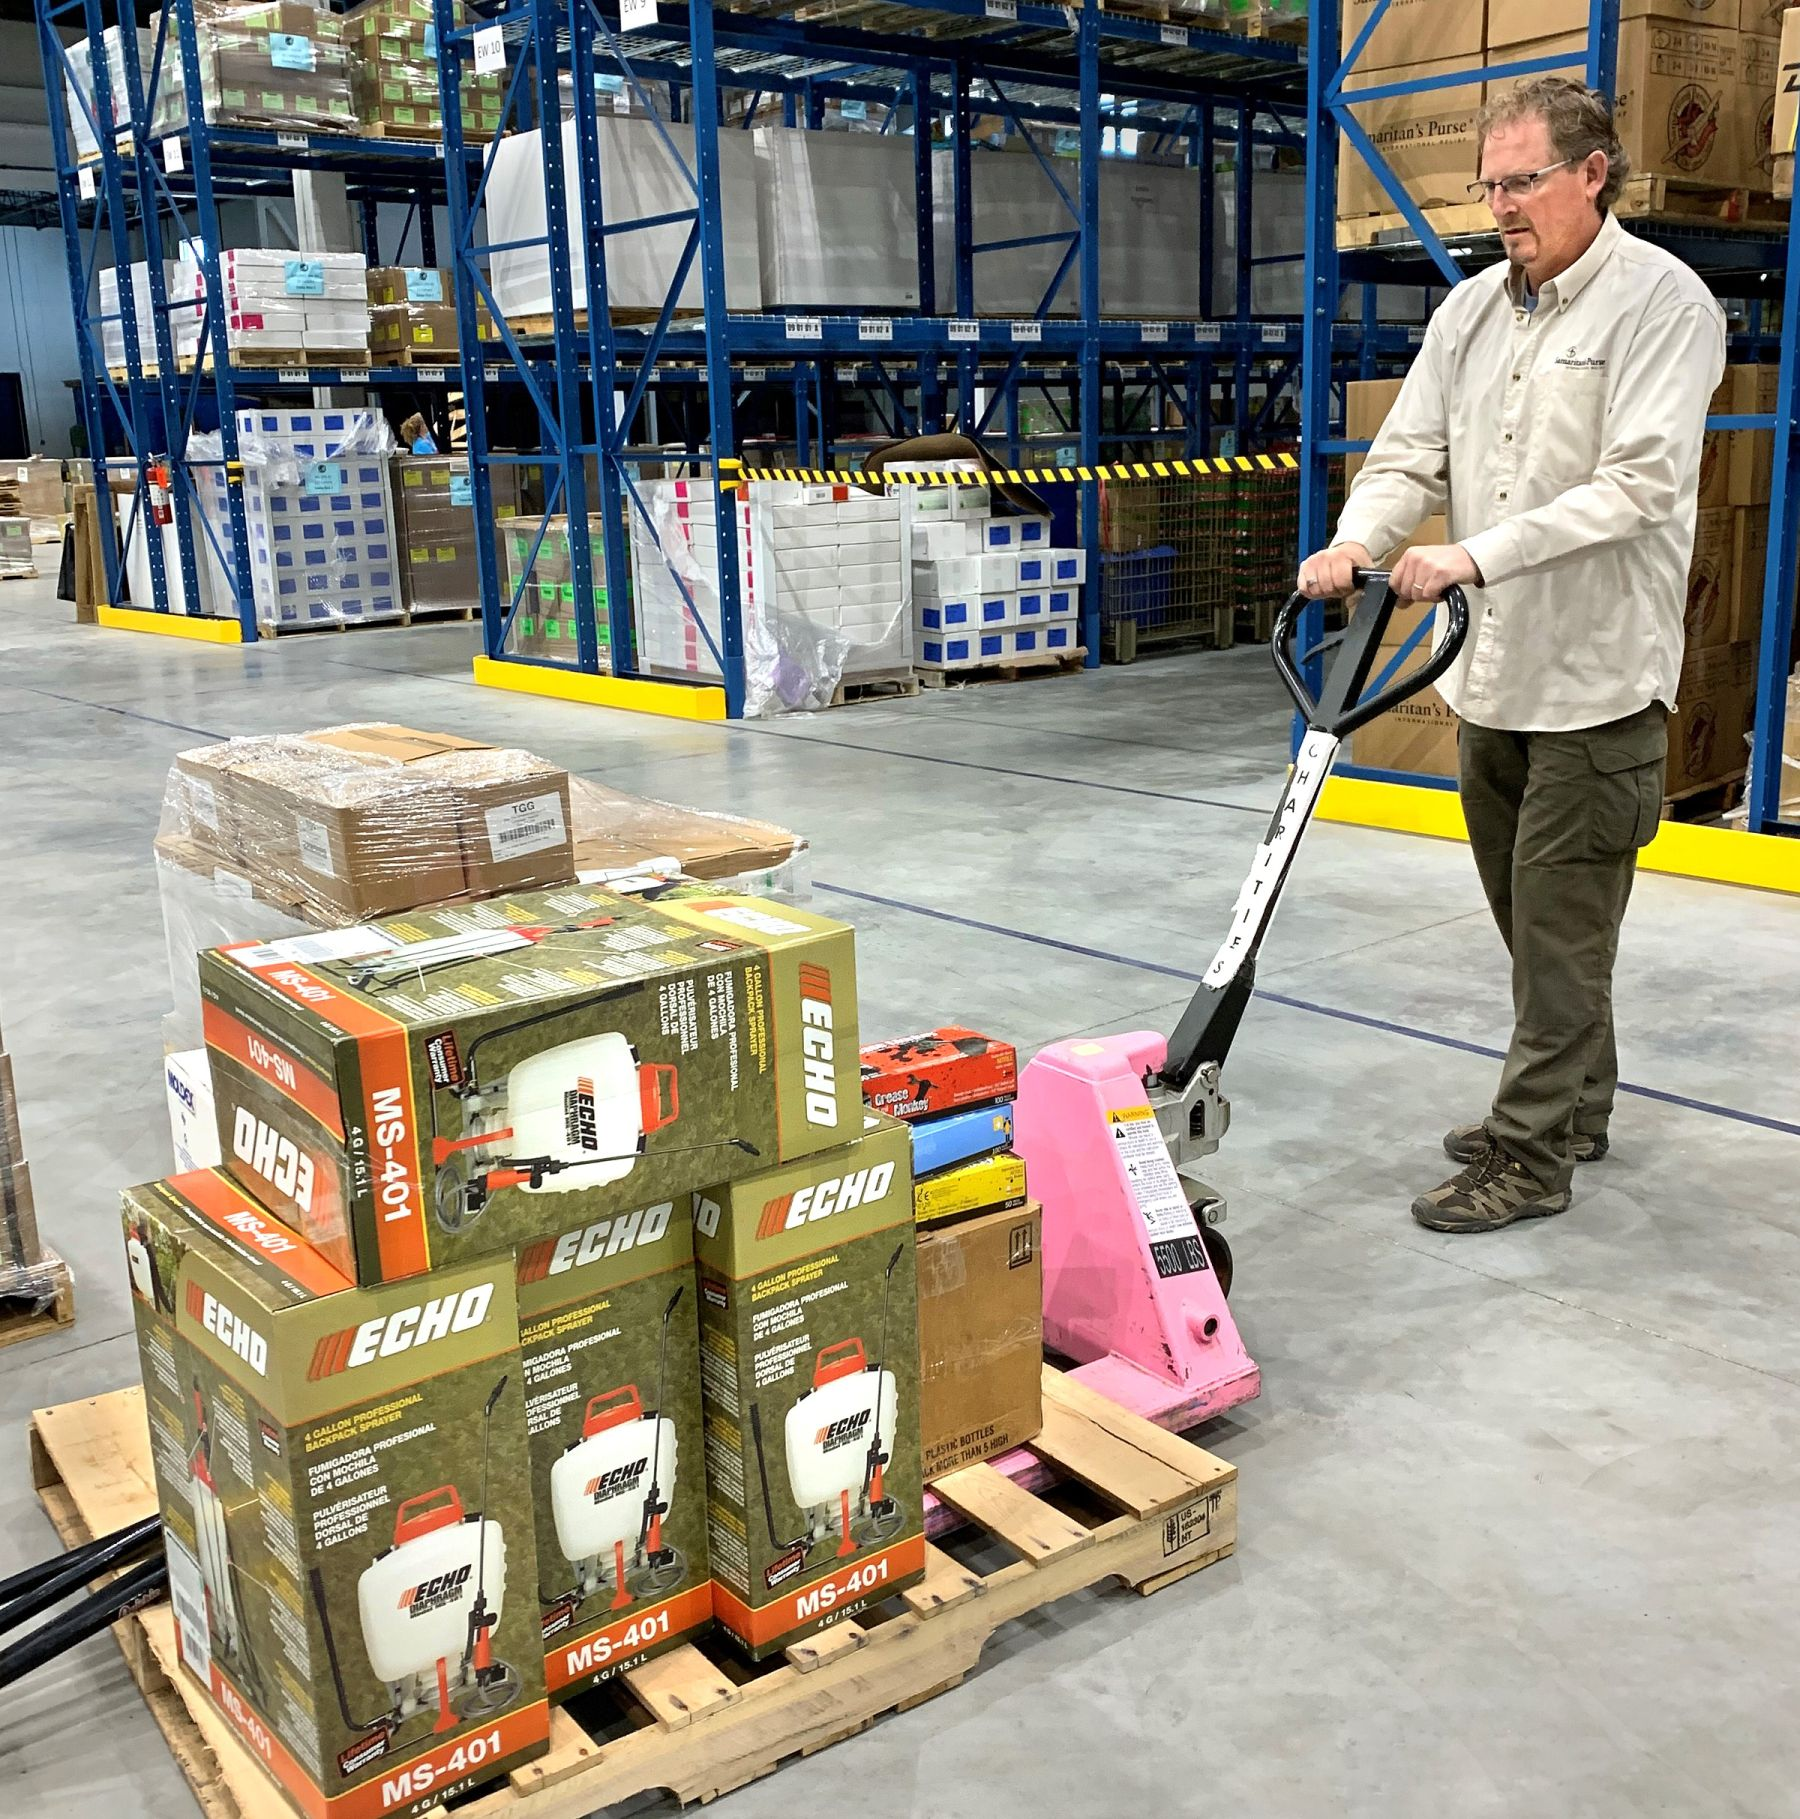 Samaritan's Purse is sending anti-mold spray, backpack sprayers, gloves, Tyvek suits, brushes, and more to Fort Simpson and Jean Marie River in Northwest Territories.